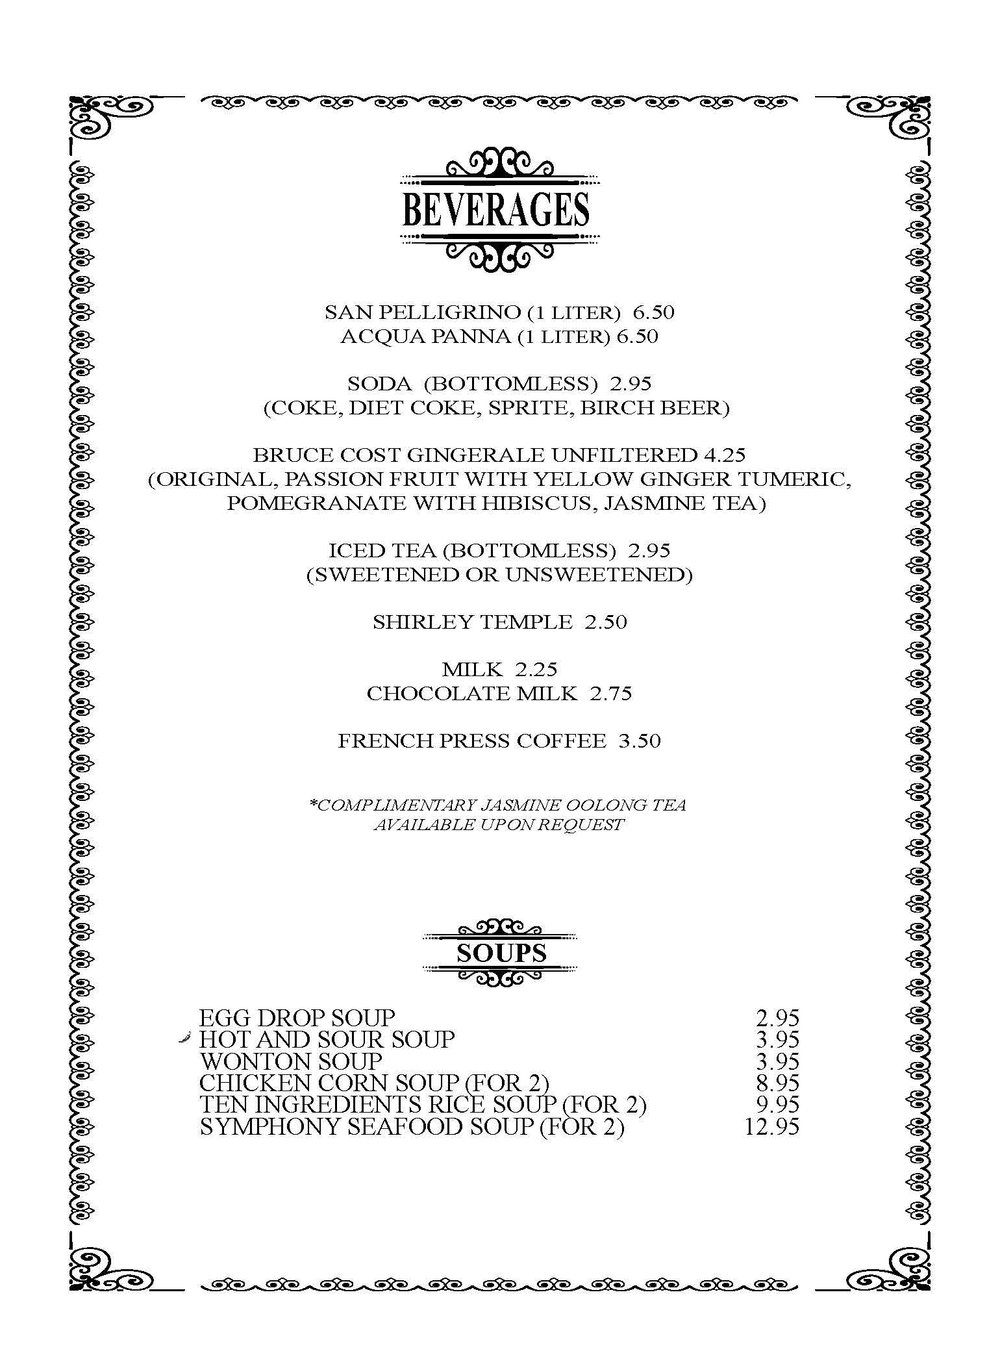 NOBLE EAST DINE IN MENU FOR AMY WEBSITE_Page_02.jpg